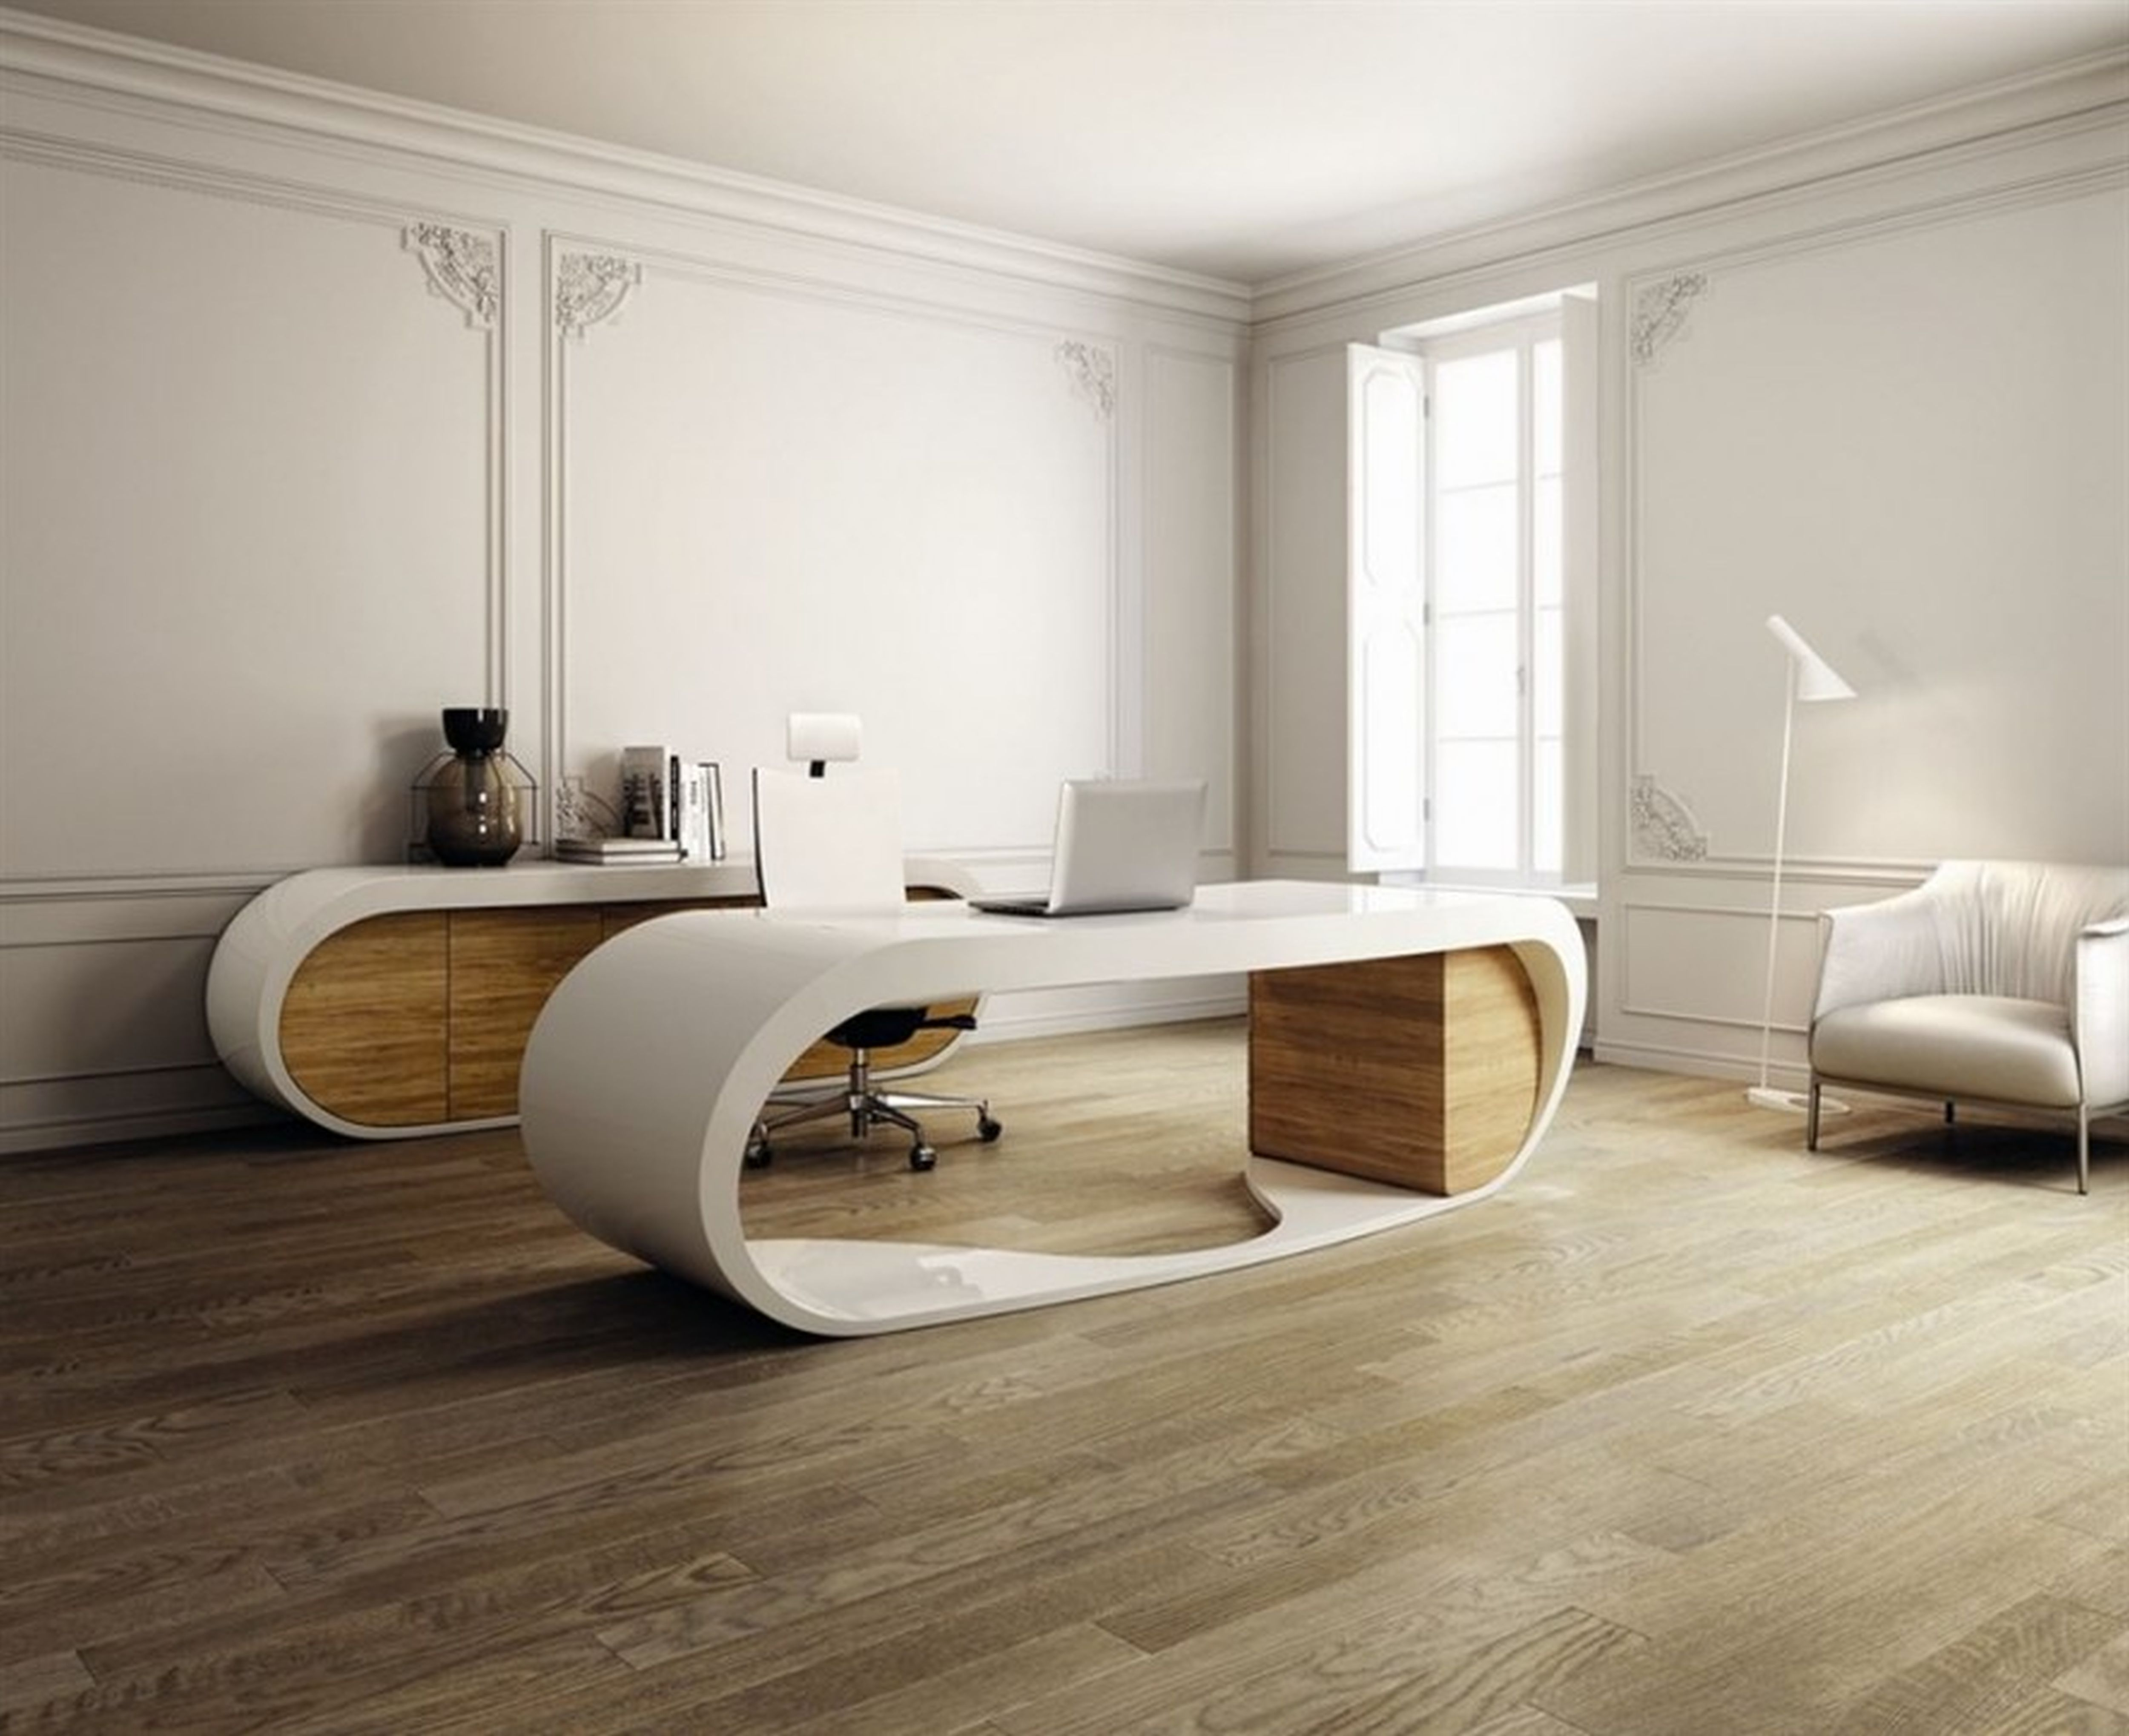 Home interior wooden floor unique office desk modern for Interior design furniture